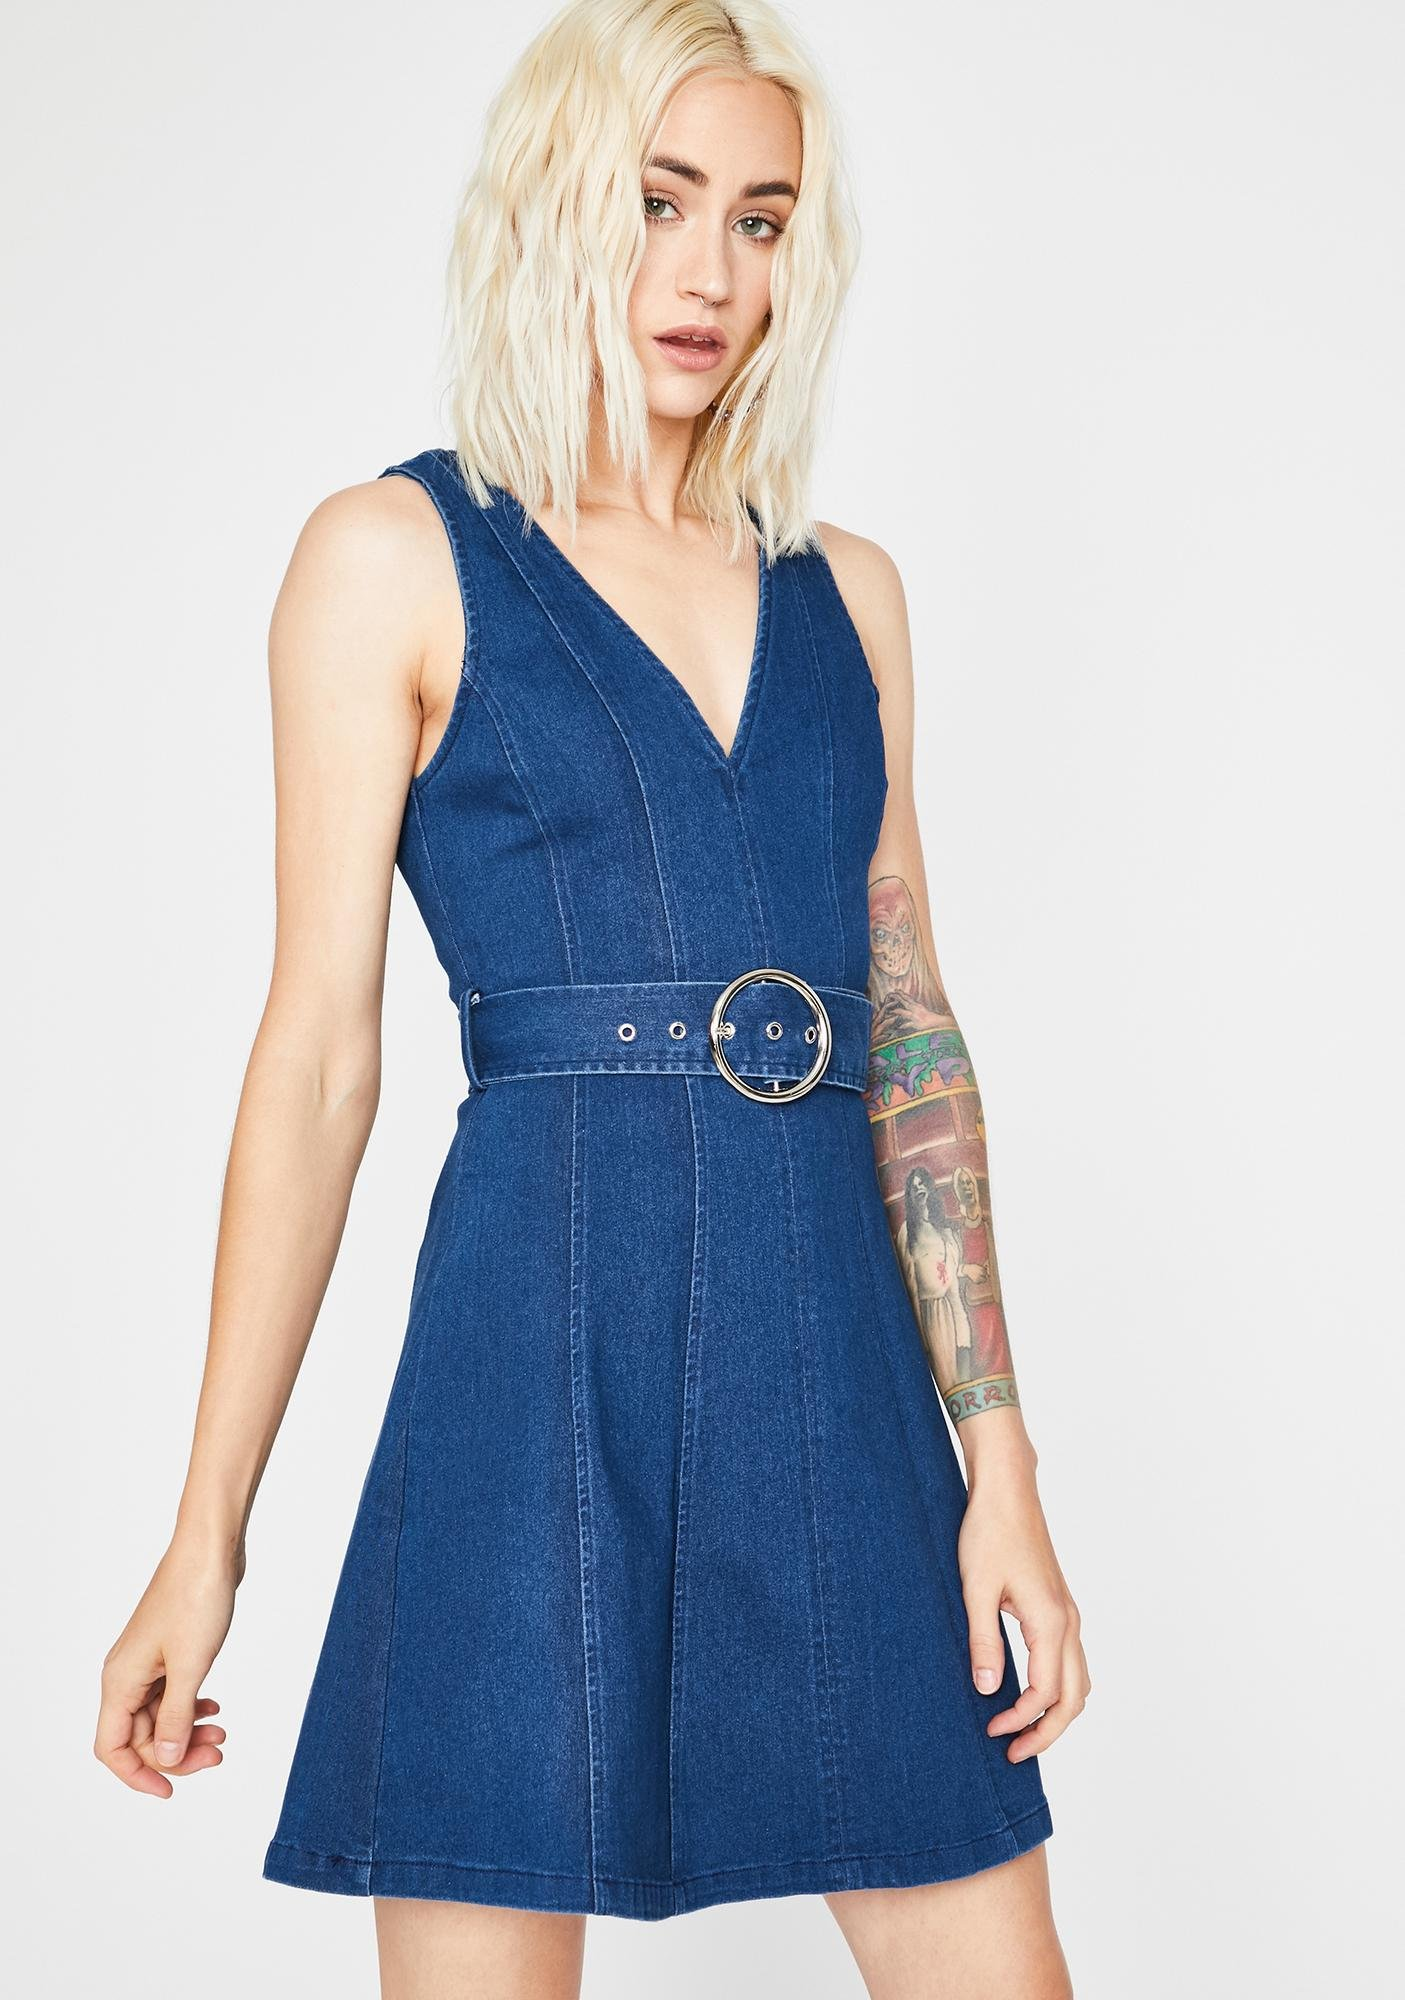 Servin' Babe Lewks Denim Dress